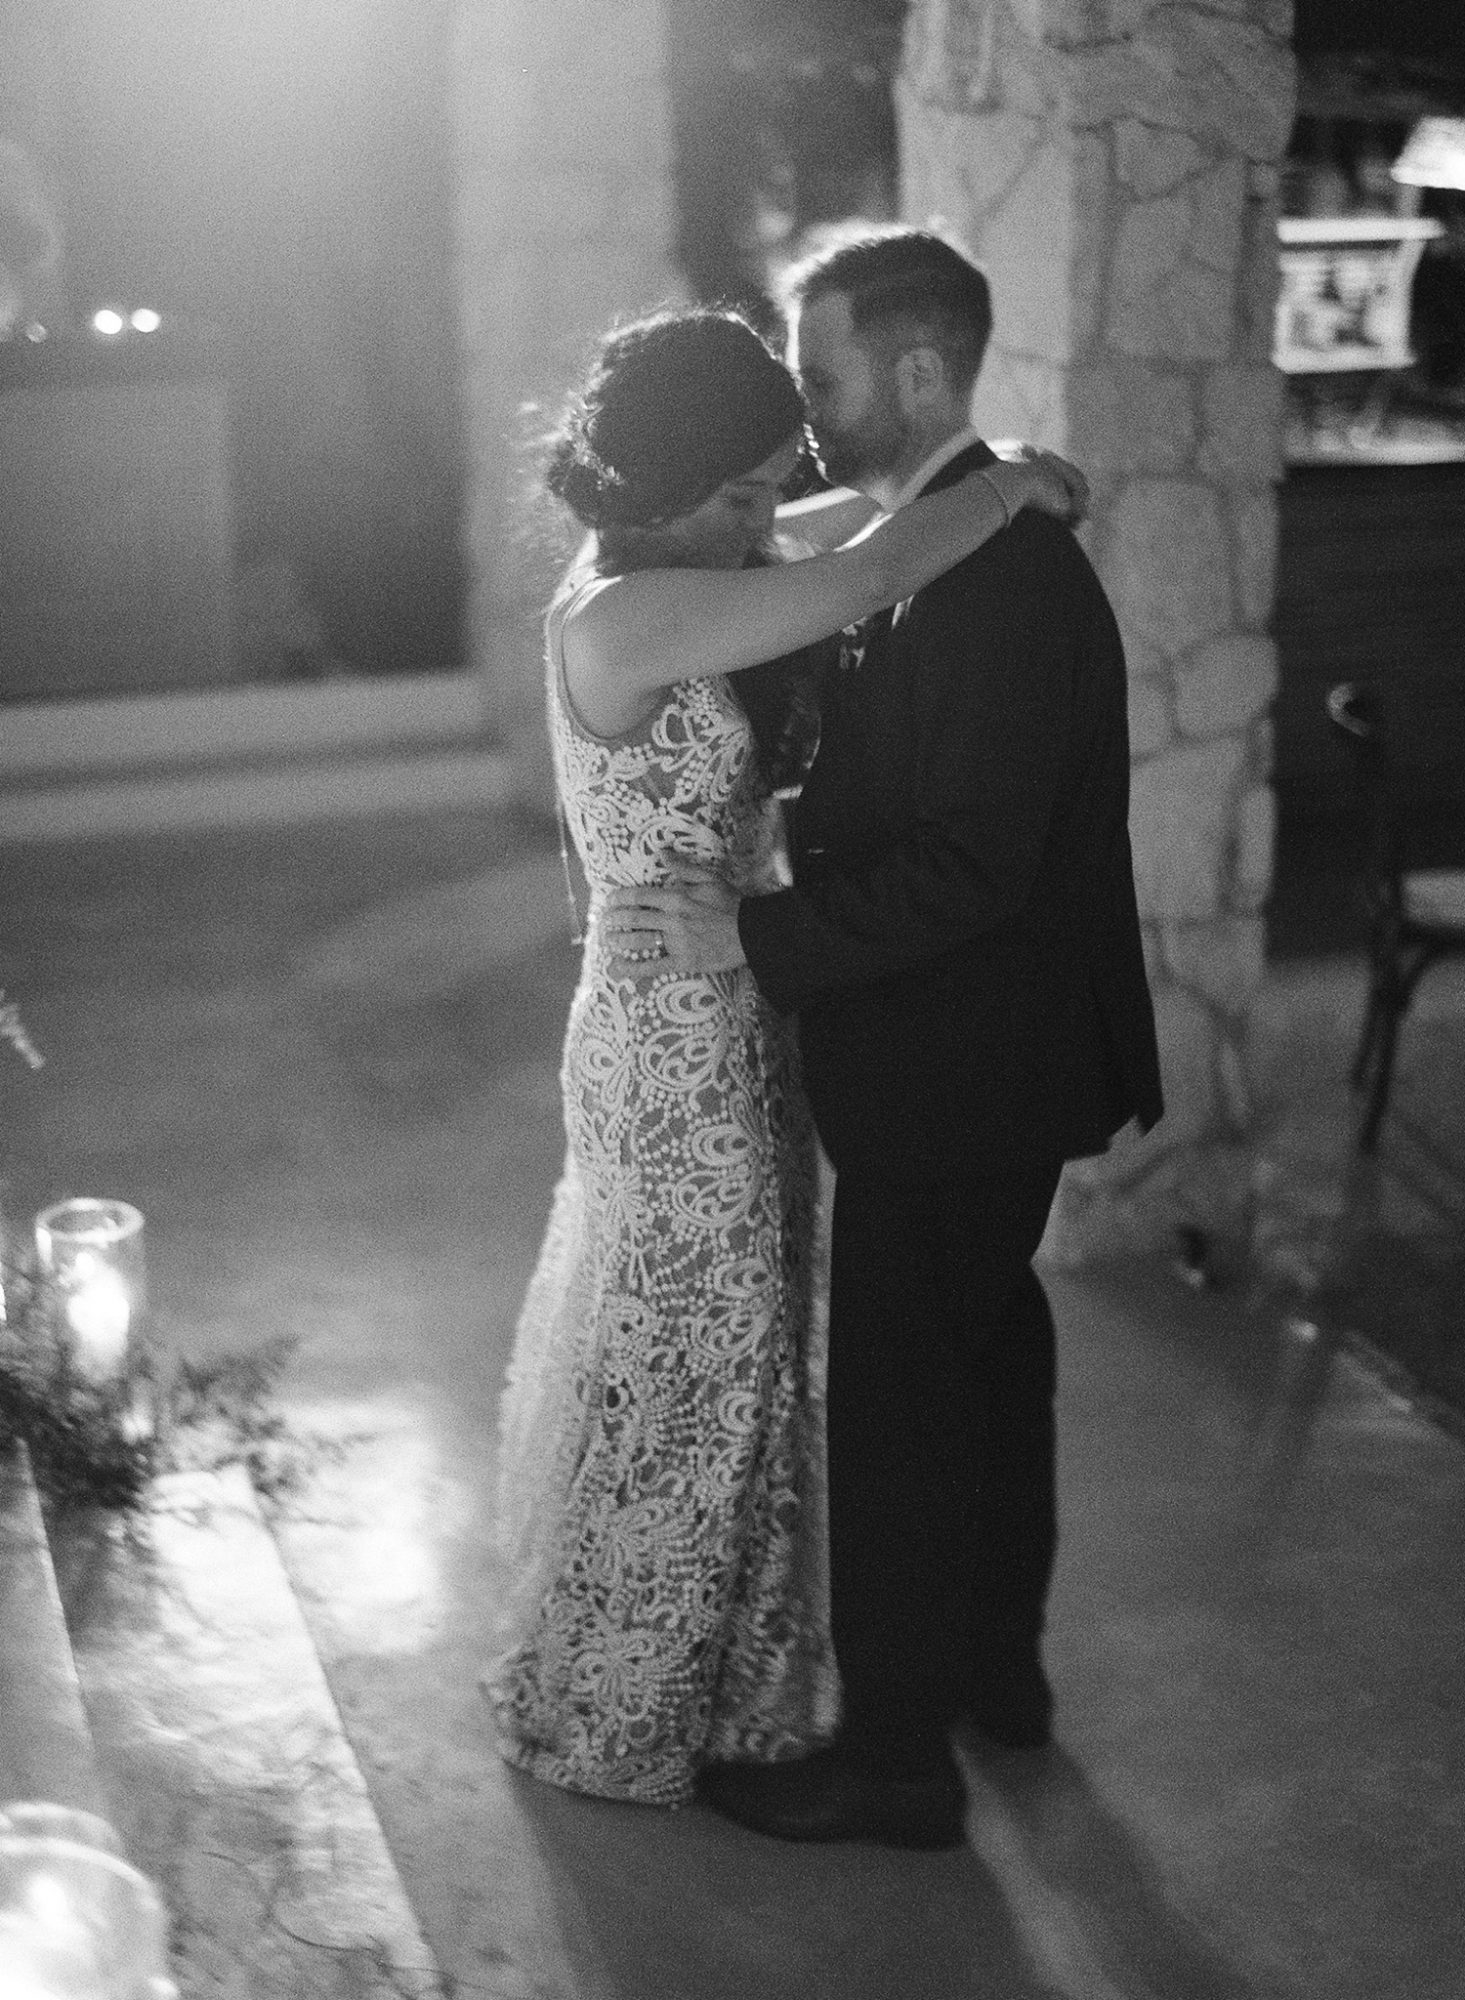 sophie jordan first dance black and white photo